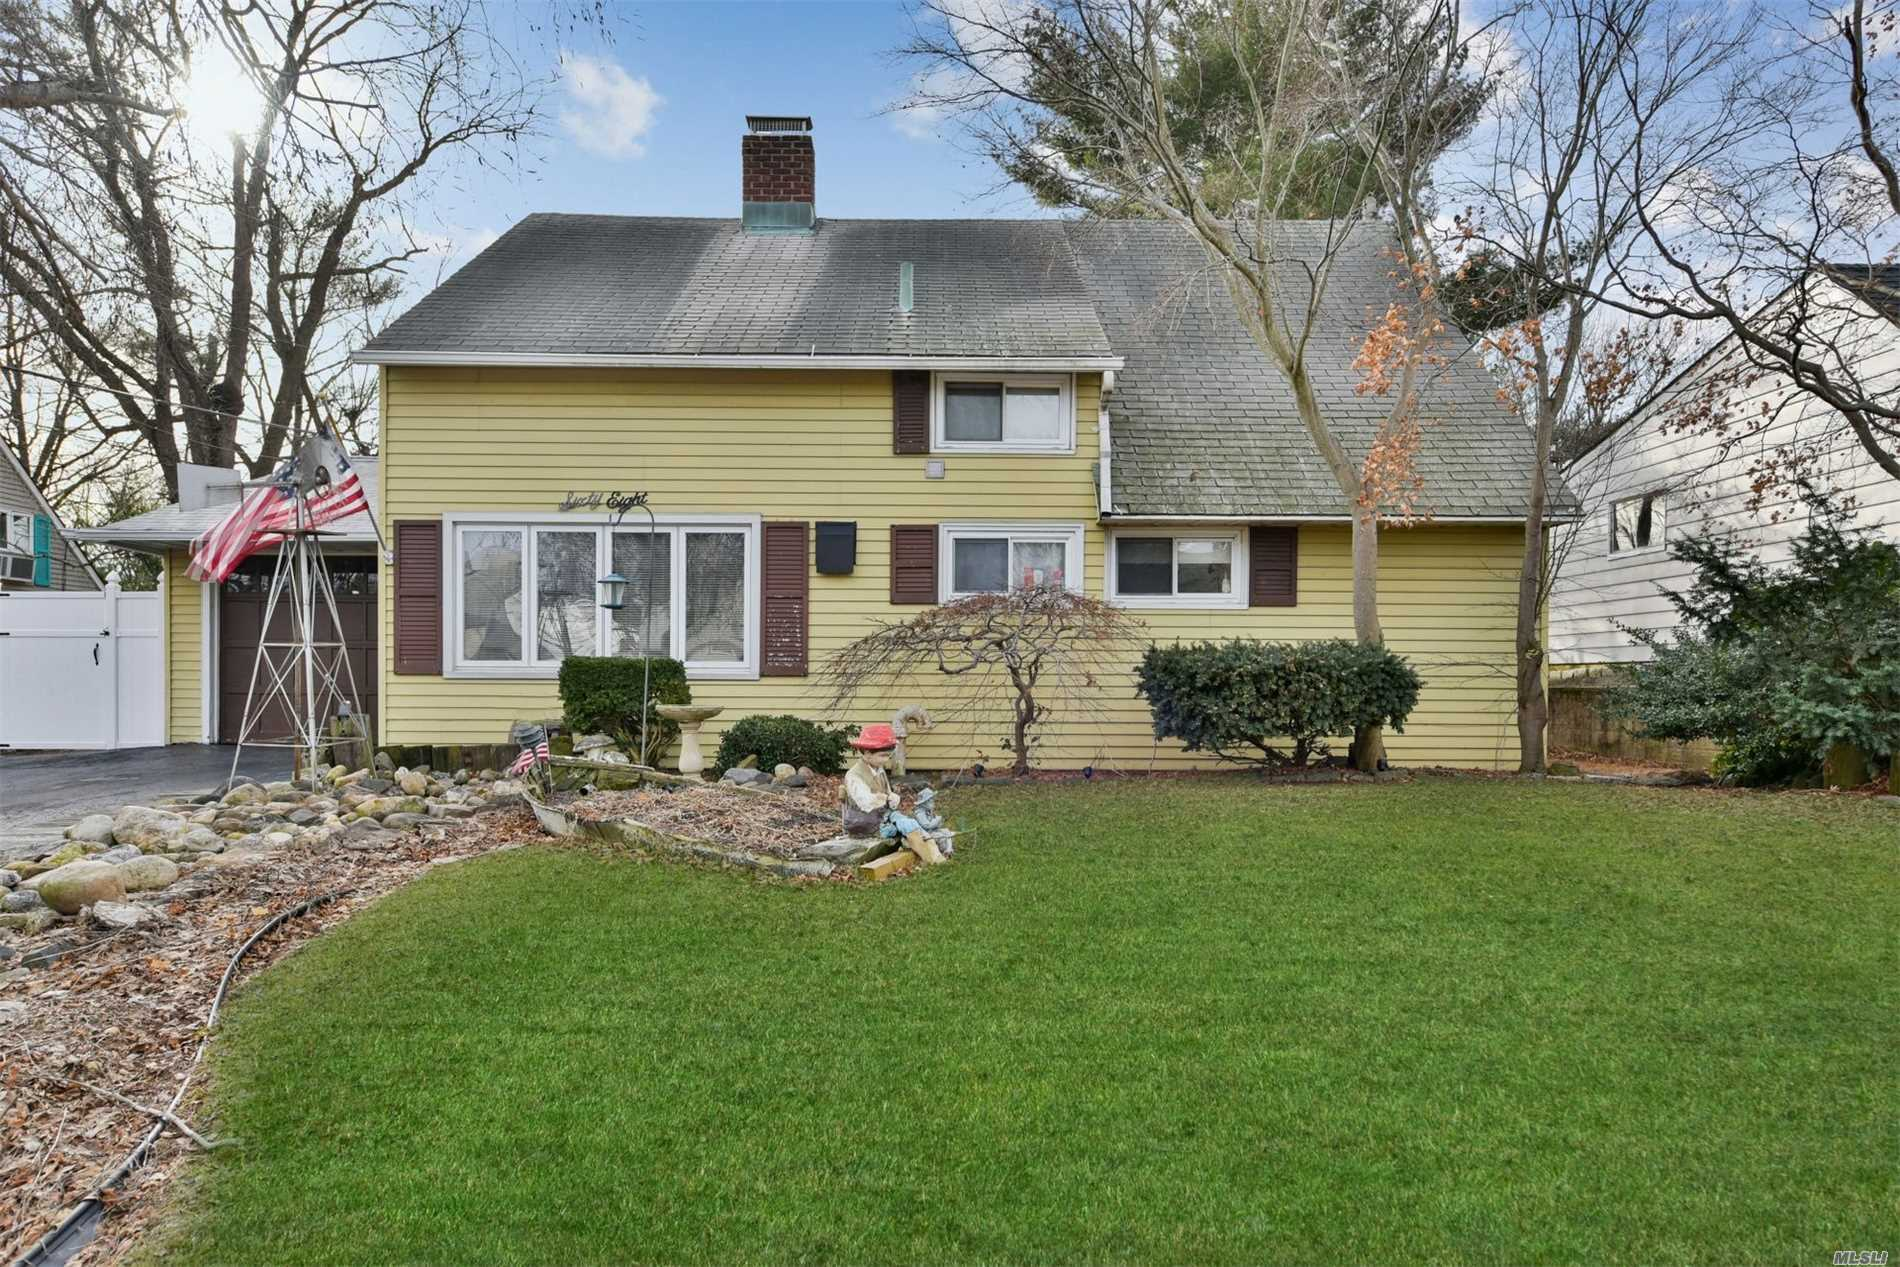 Great Expanded Cape With Rear Dormer And First Floor Extension In Island Trees Section Featuring 4 Bedrooms, 1.5 Baths, Eat In Kitchen, Dining Area, Extended Living Room W/ Wood Burning Stove, Rear Dormer, Screened In Porch, Attached Garage, Oversized Yard